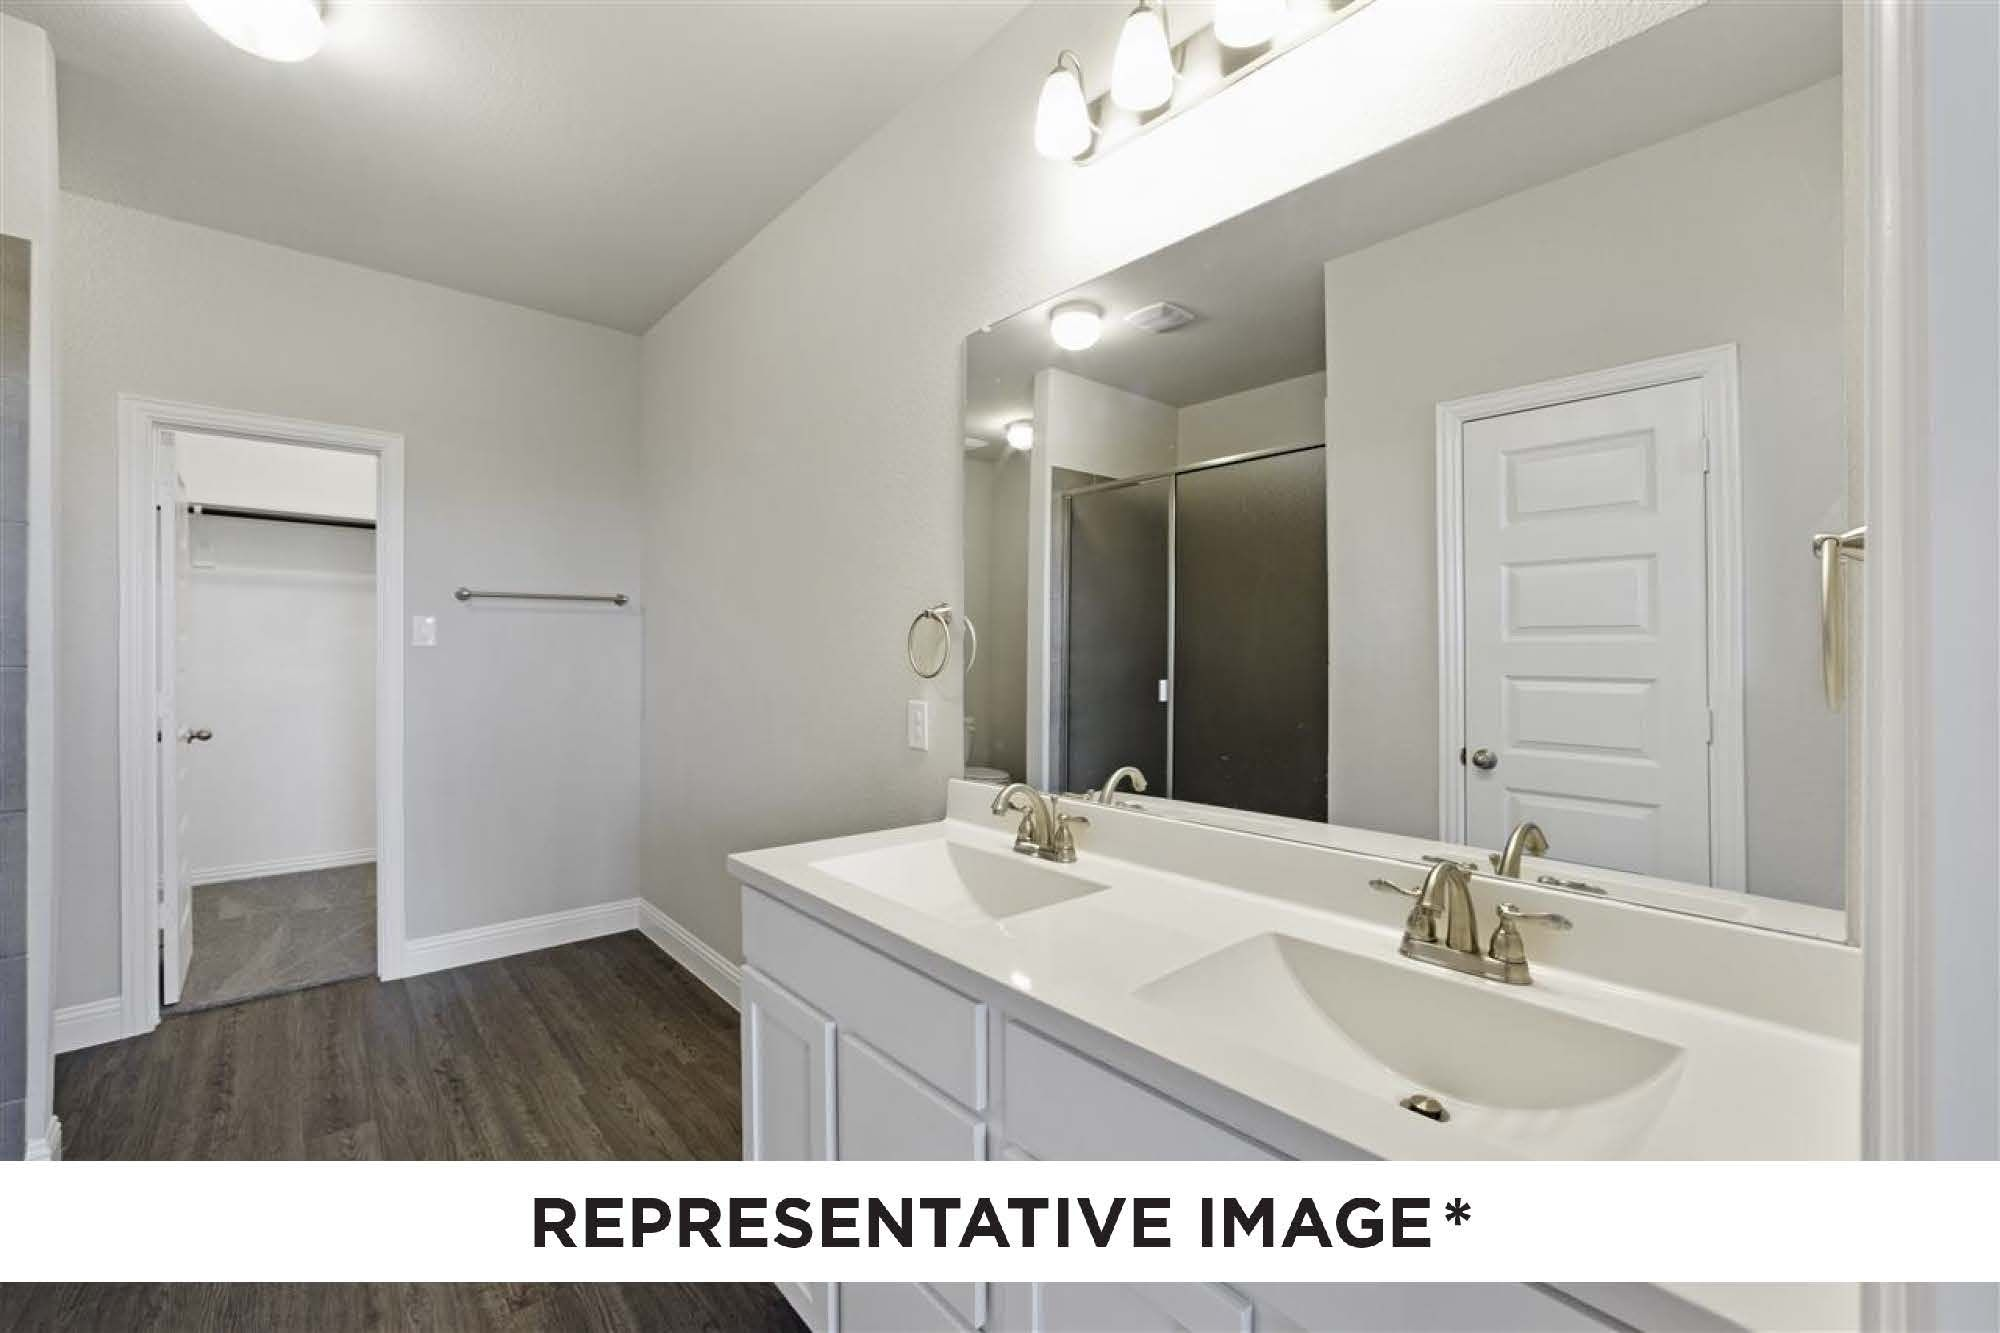 Bathroom featured in the Alder By HistoryMaker Homes    in Fort Worth, TX